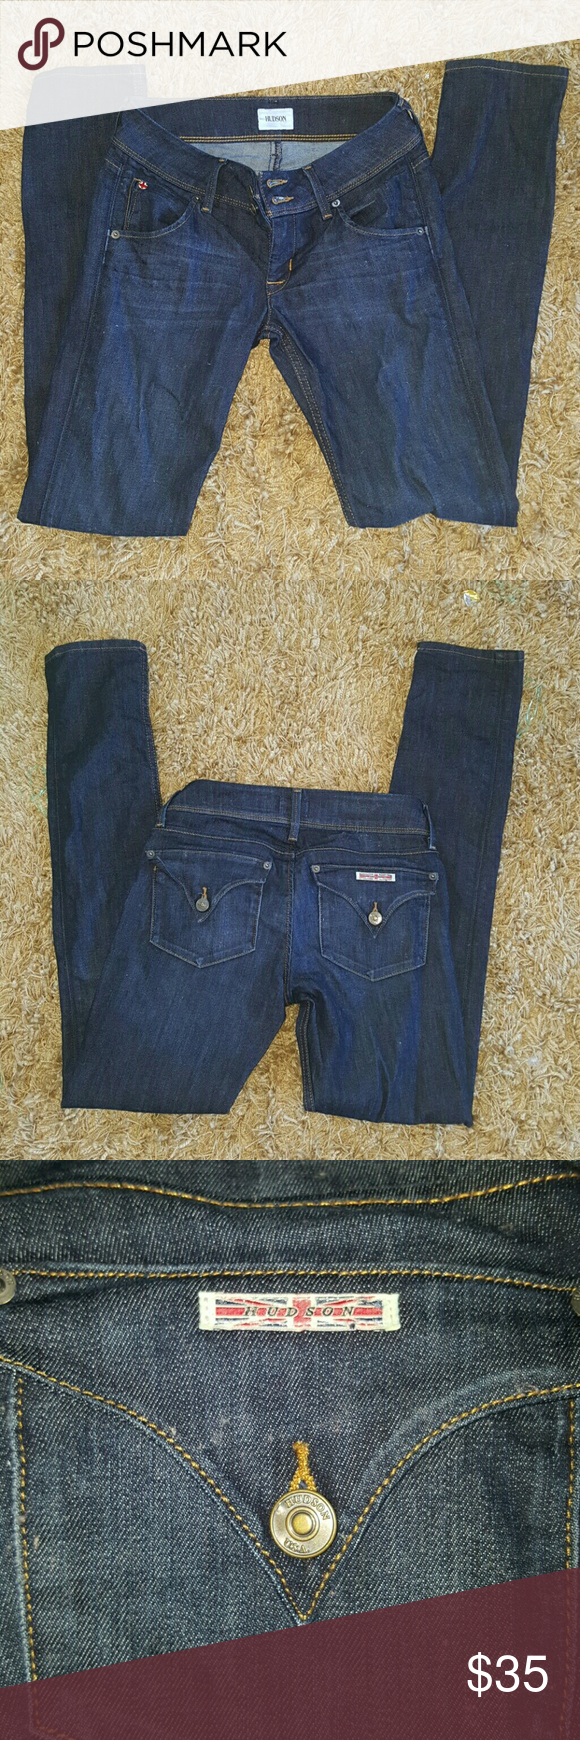 """Hudson Jeans Collin Flap Skinny Jeans EUC, worn only a handful of times.  Washed/air dried and ready for a new home. Color # Geno,  style # 7939-00. Hudson Collin Flap Skinny Jeans size 25 inseam 31"""". Hudson Jeans Jeans Skinny"""